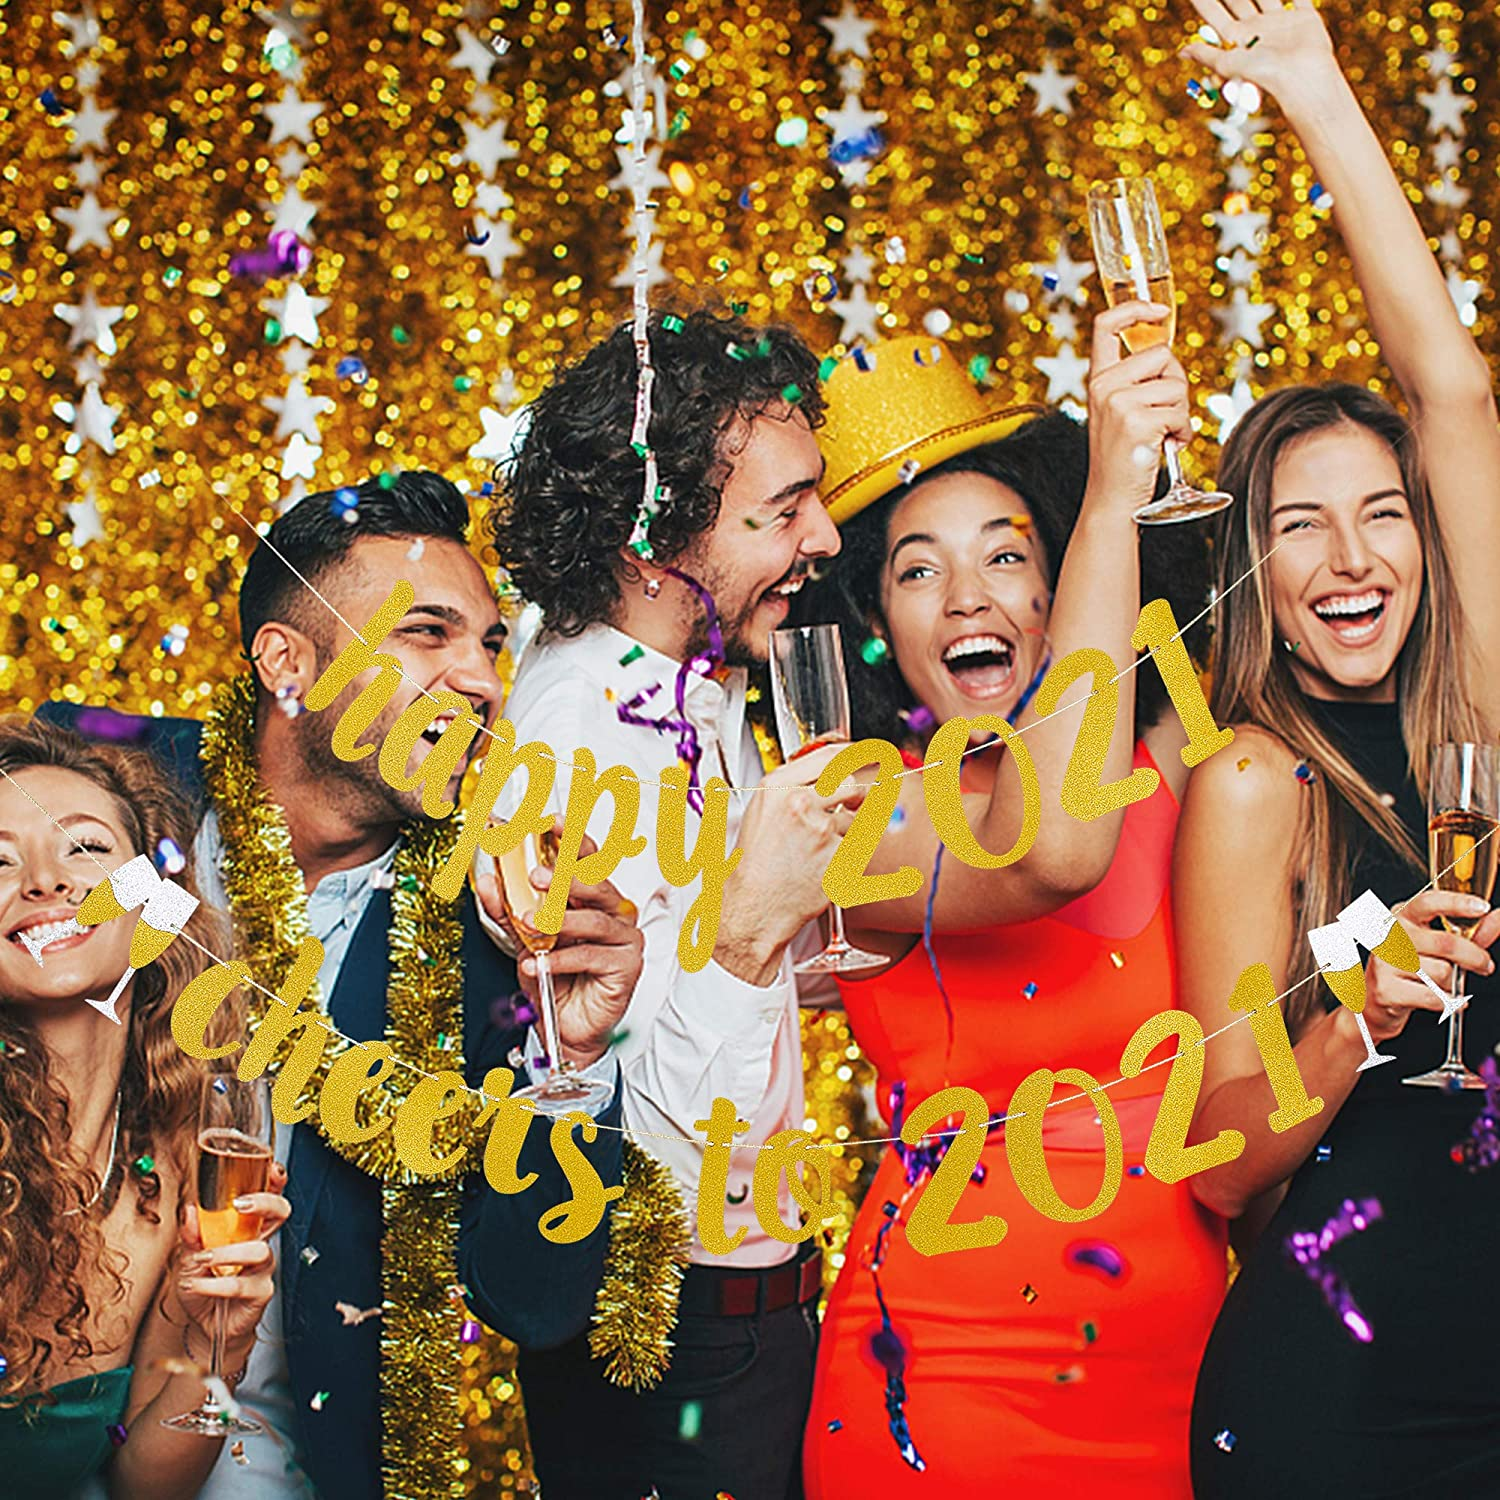 Happy 2021 Cheers To 2021 Gold Glittery Banner New Years Eve Party Supplies 2021 Happy New Year Decorations 2021 New Years Holiday Fireplace Mantle Home Party Decor